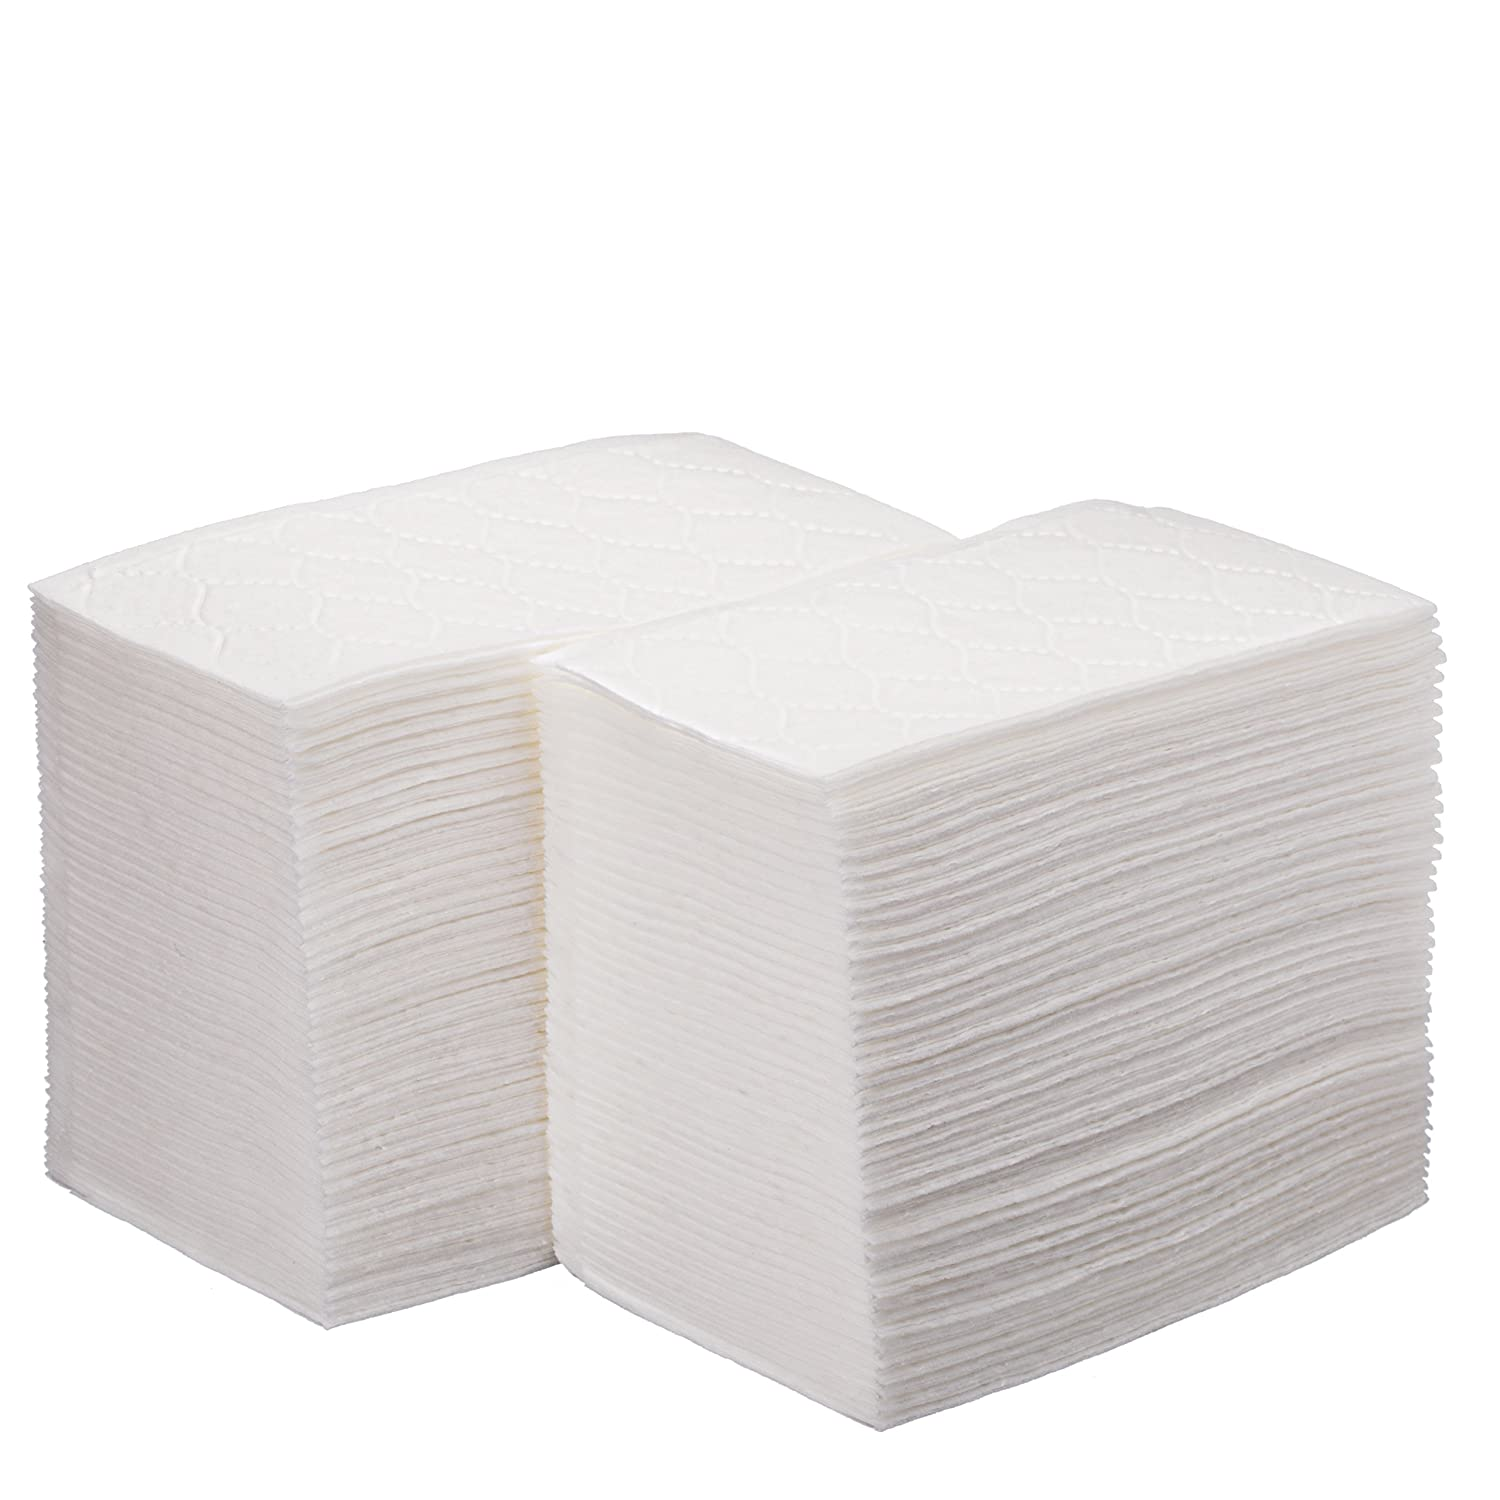 eDayDeal luxury soft paper hand towels